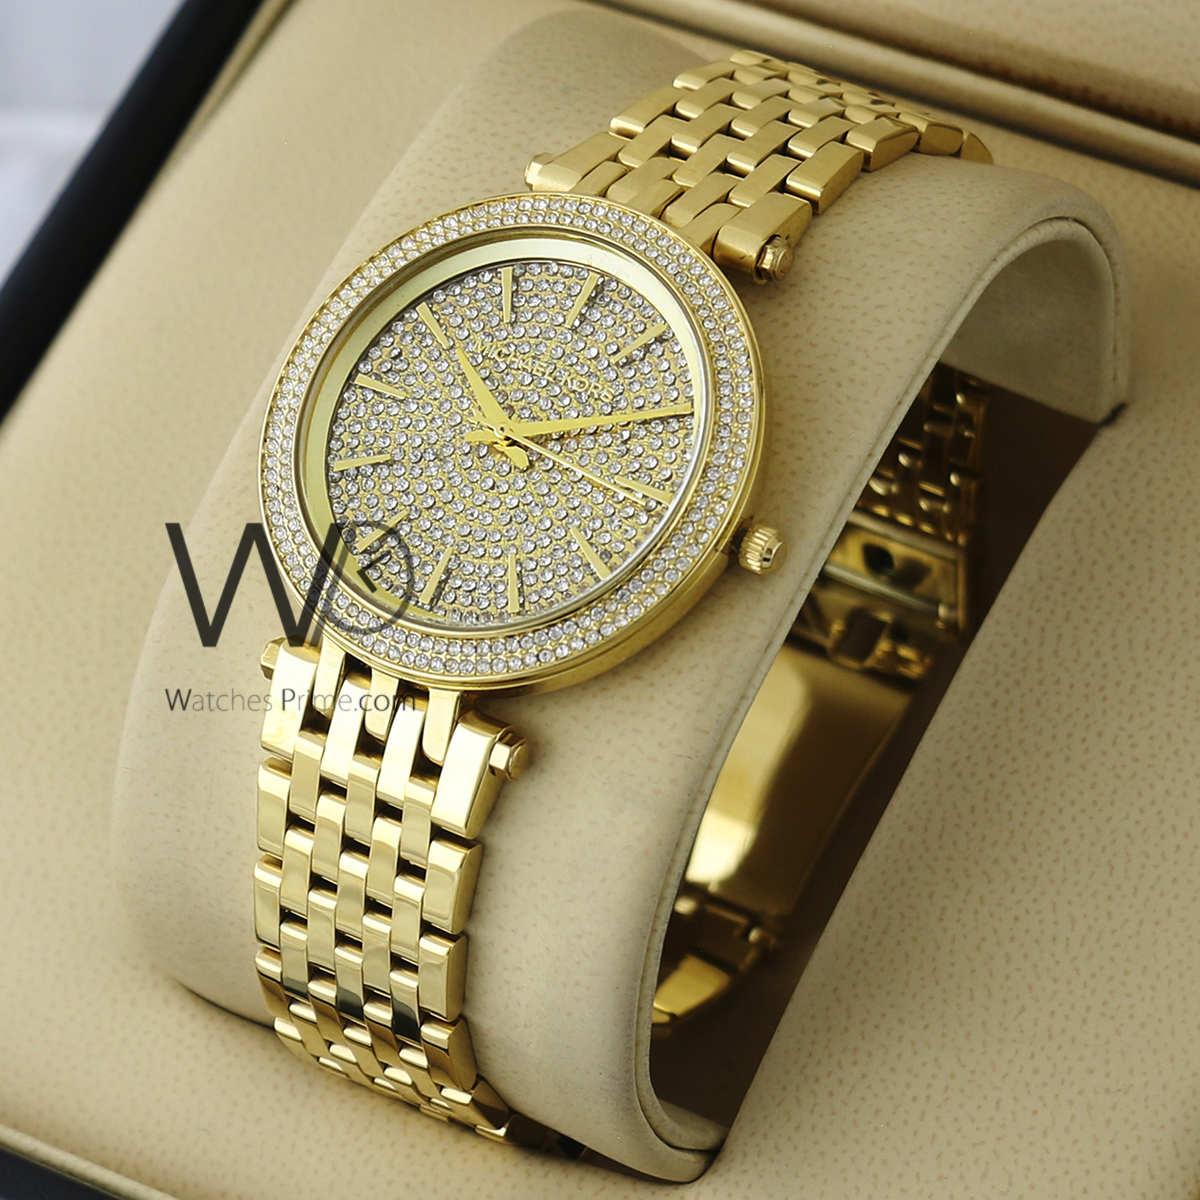 f9c7dd021d141 MICHAEL KORS CHRONOGRAPH WATCH GOLD WITH STAINLESS STEEL GOLD BELT. SKU:  w1742. Roll over image to zoom in